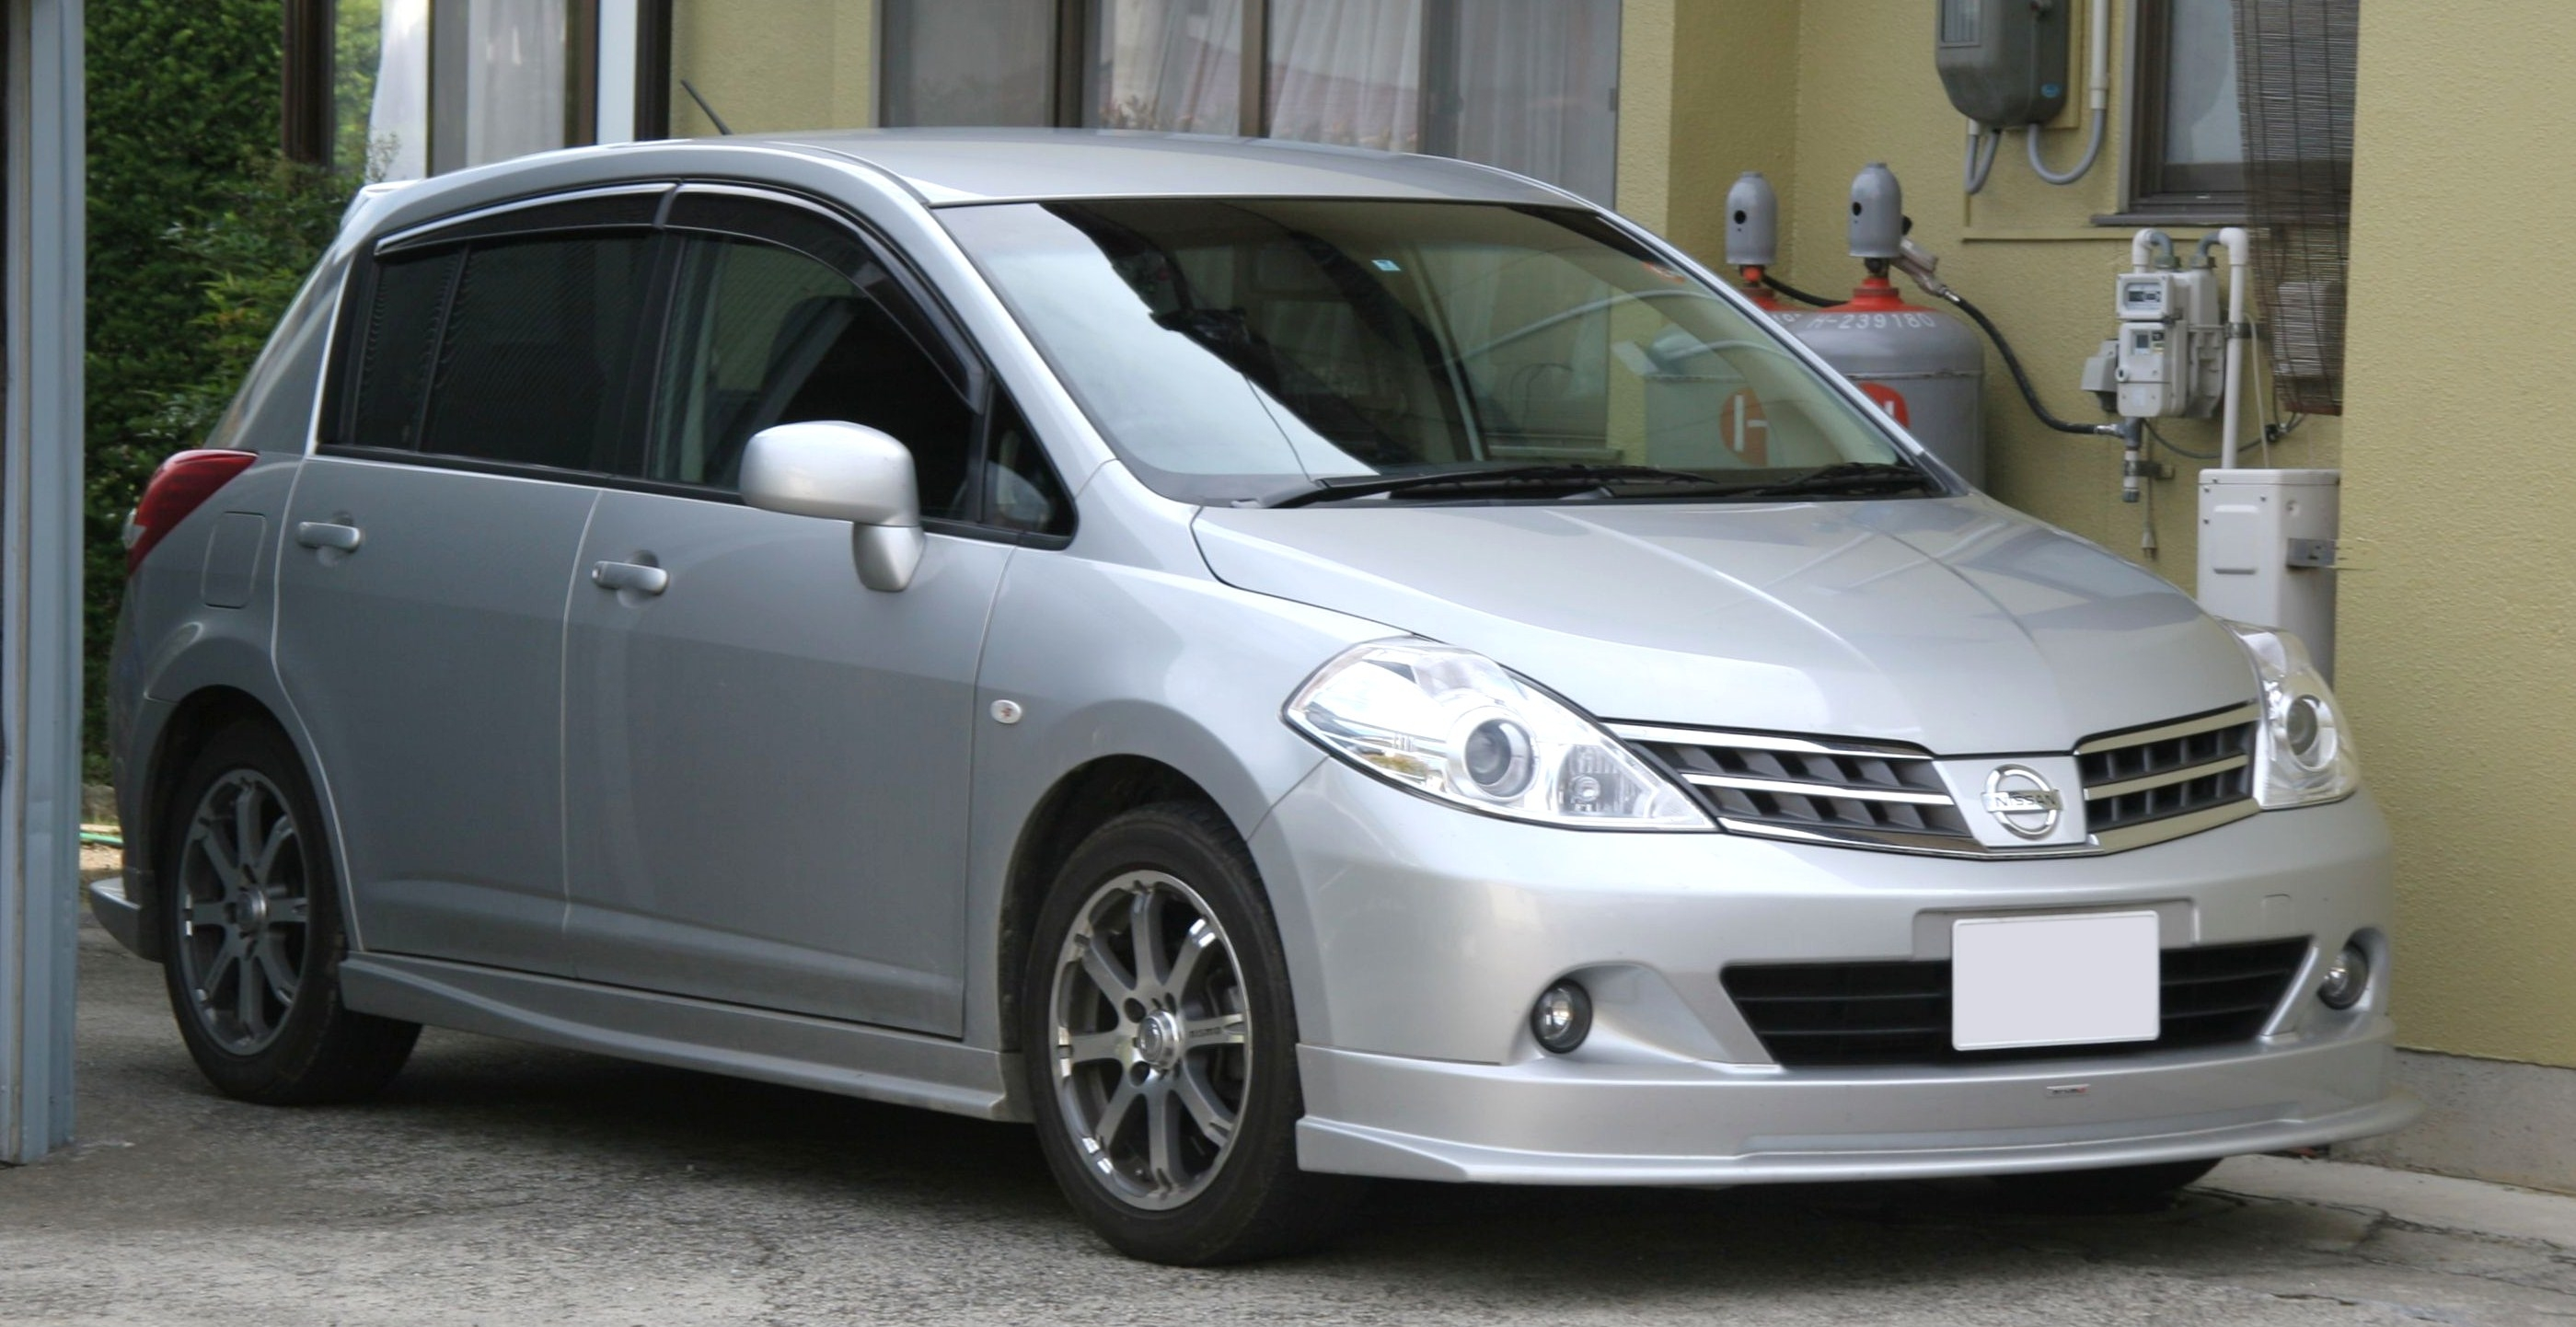 Related Keywords Amp Suggestions For Nissan Tiida 2009